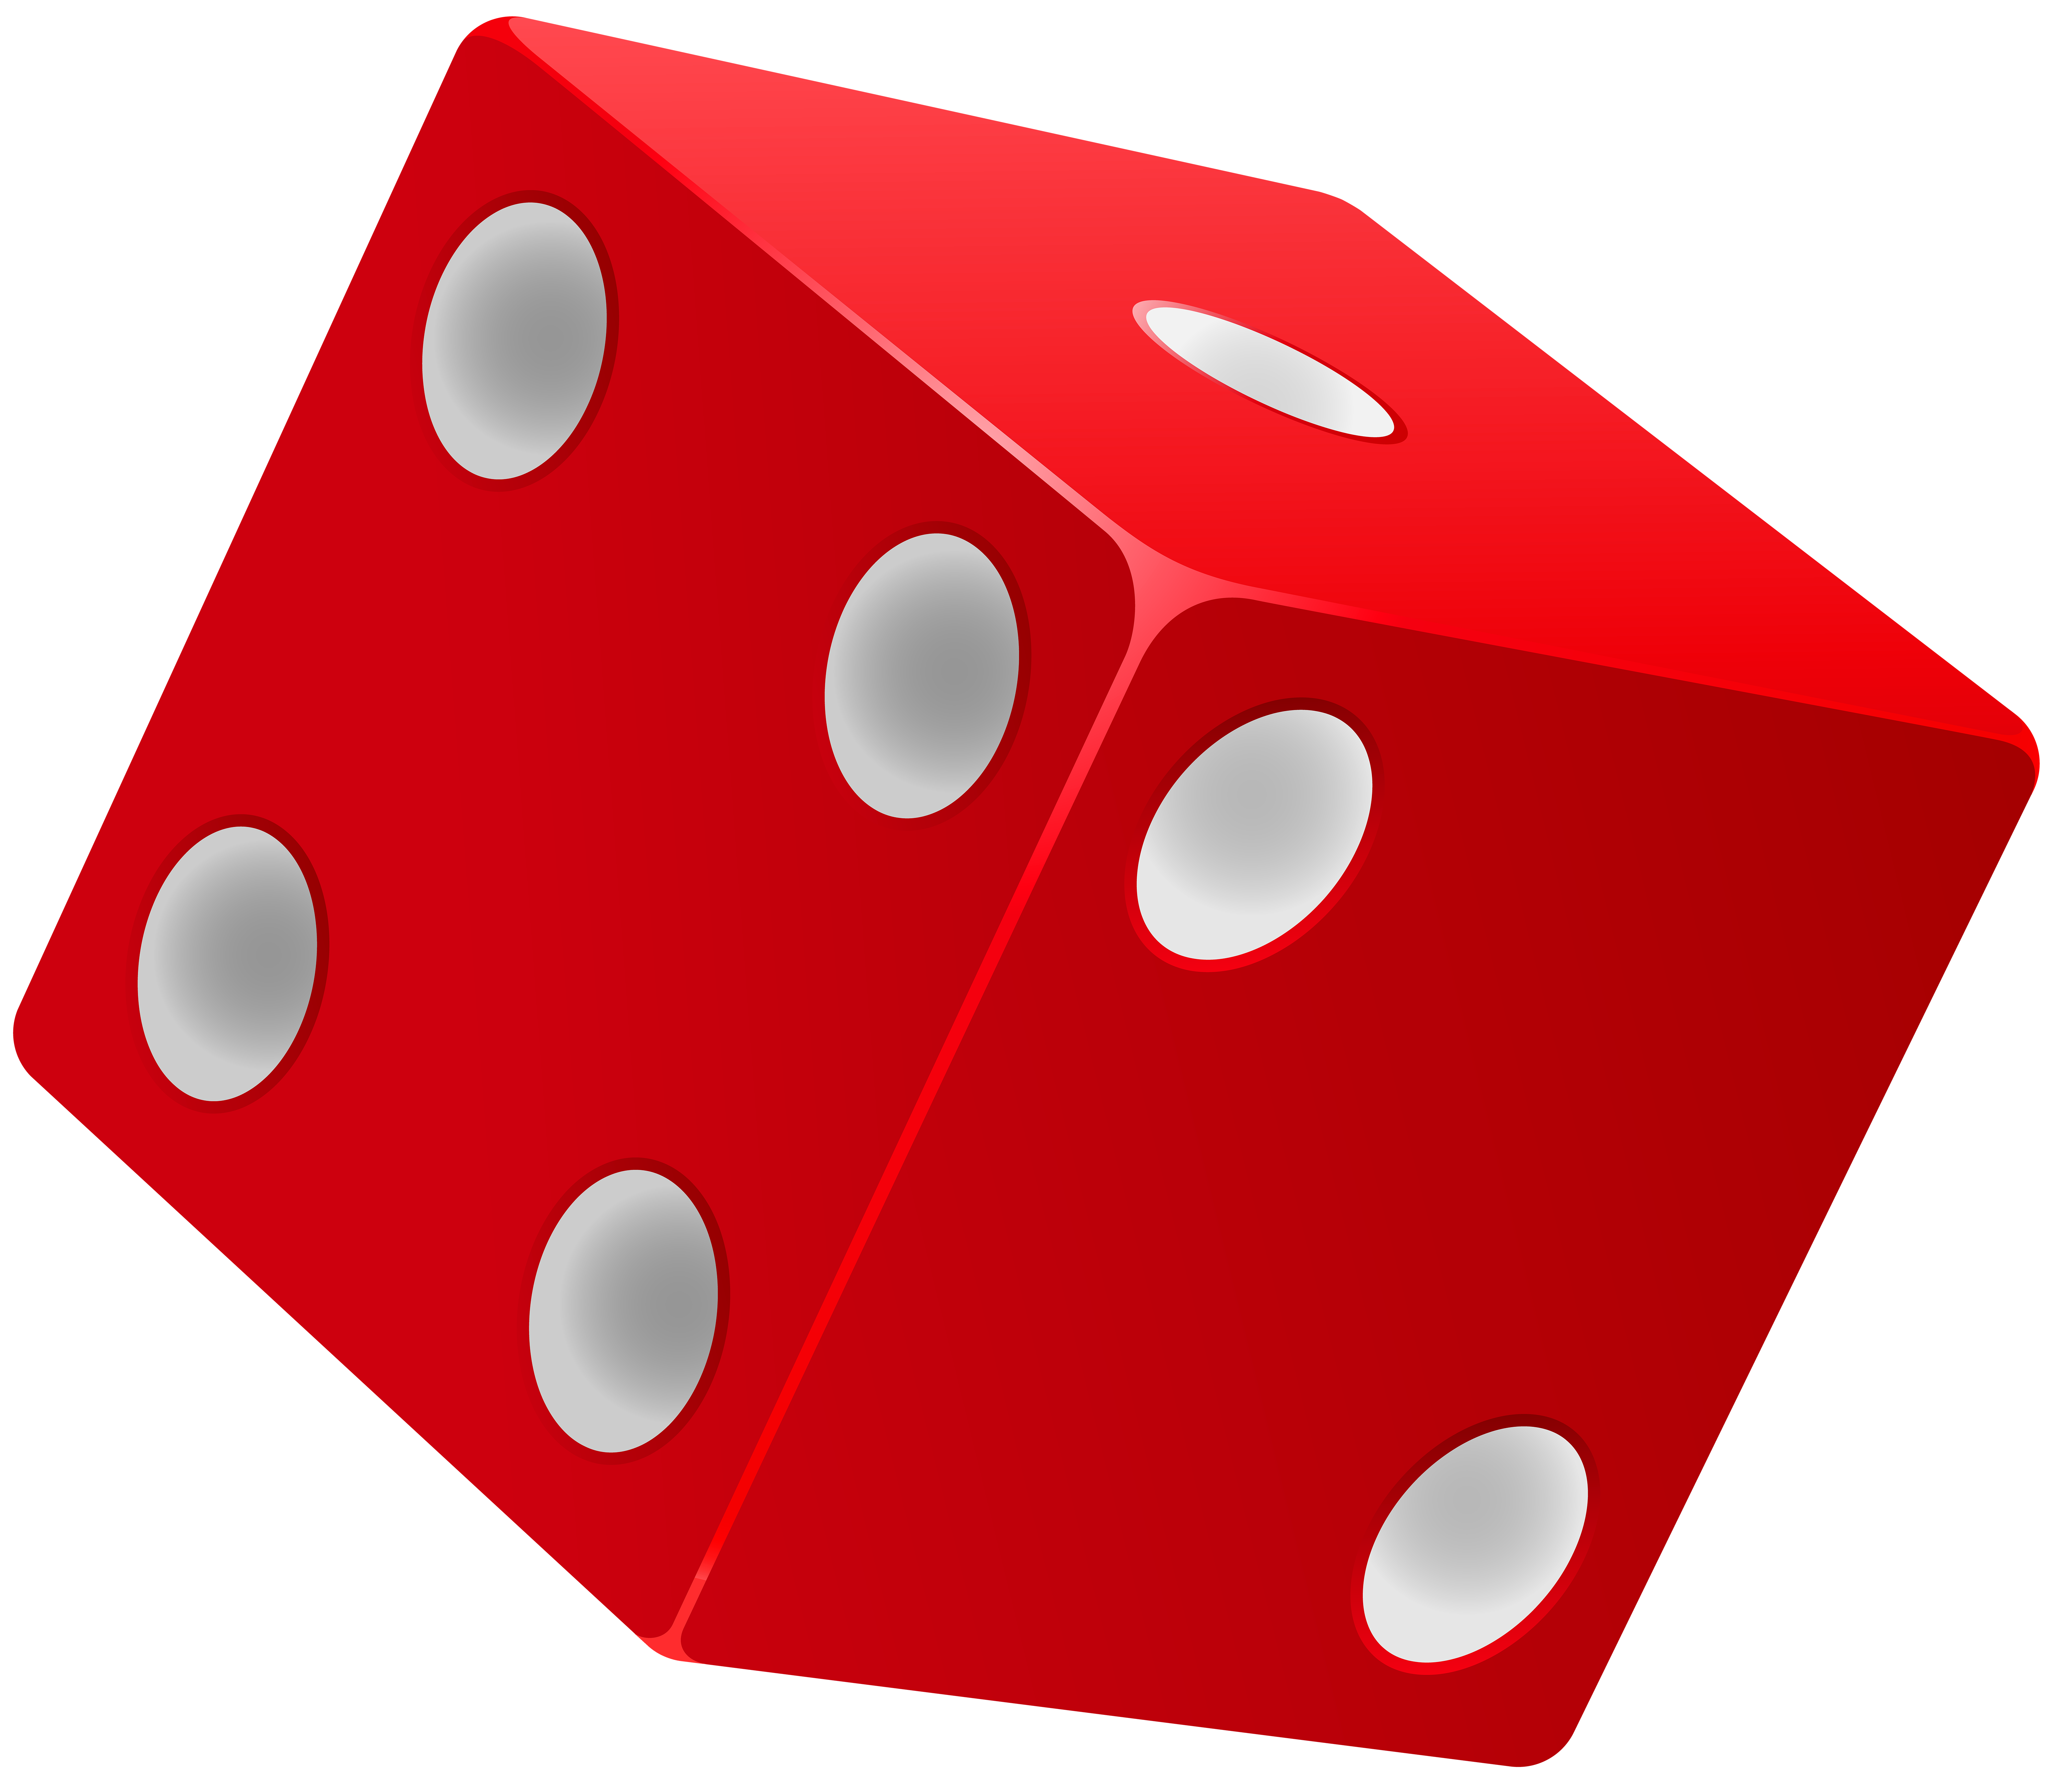 6000x5225 Red Dice Png Clip Art